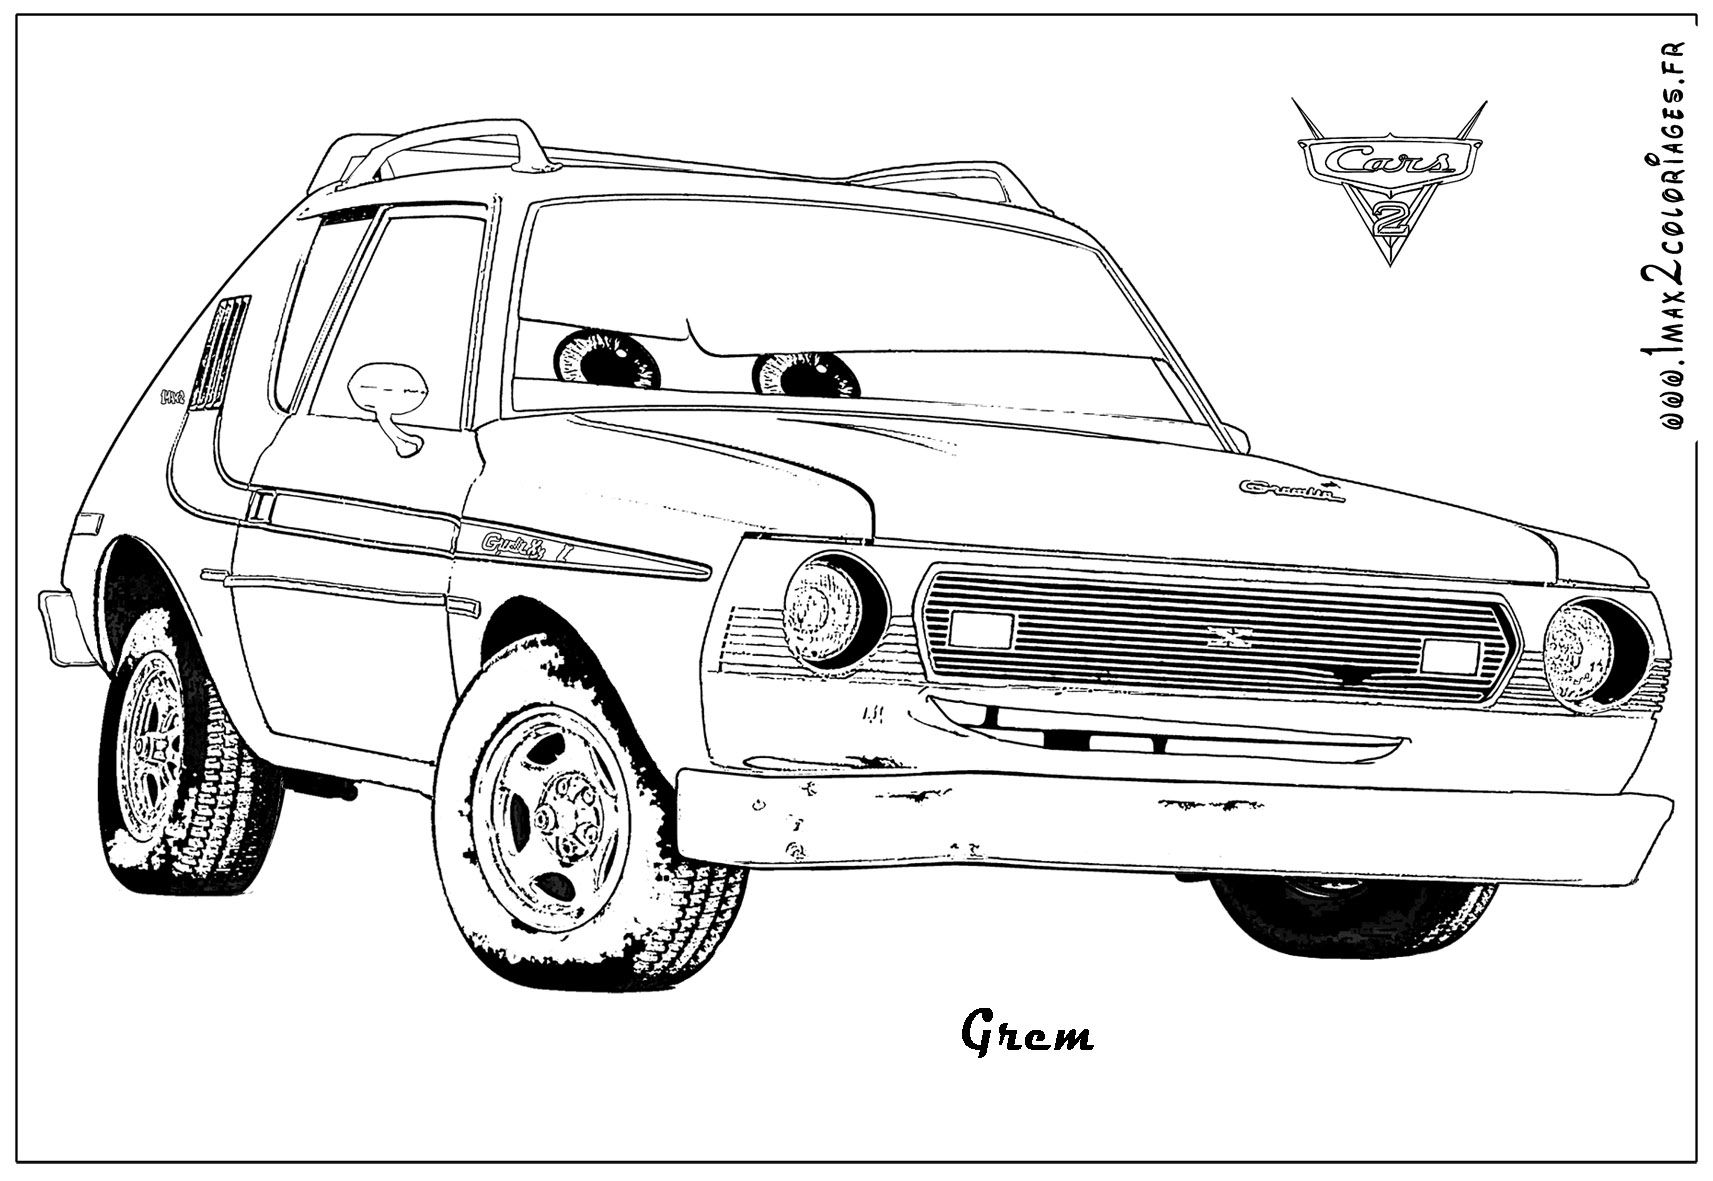 Cars 2 Printable Coloring Pages Grem Cars 2 Colouring Coloring Pages Cars Coloring Pages Colouring Pages